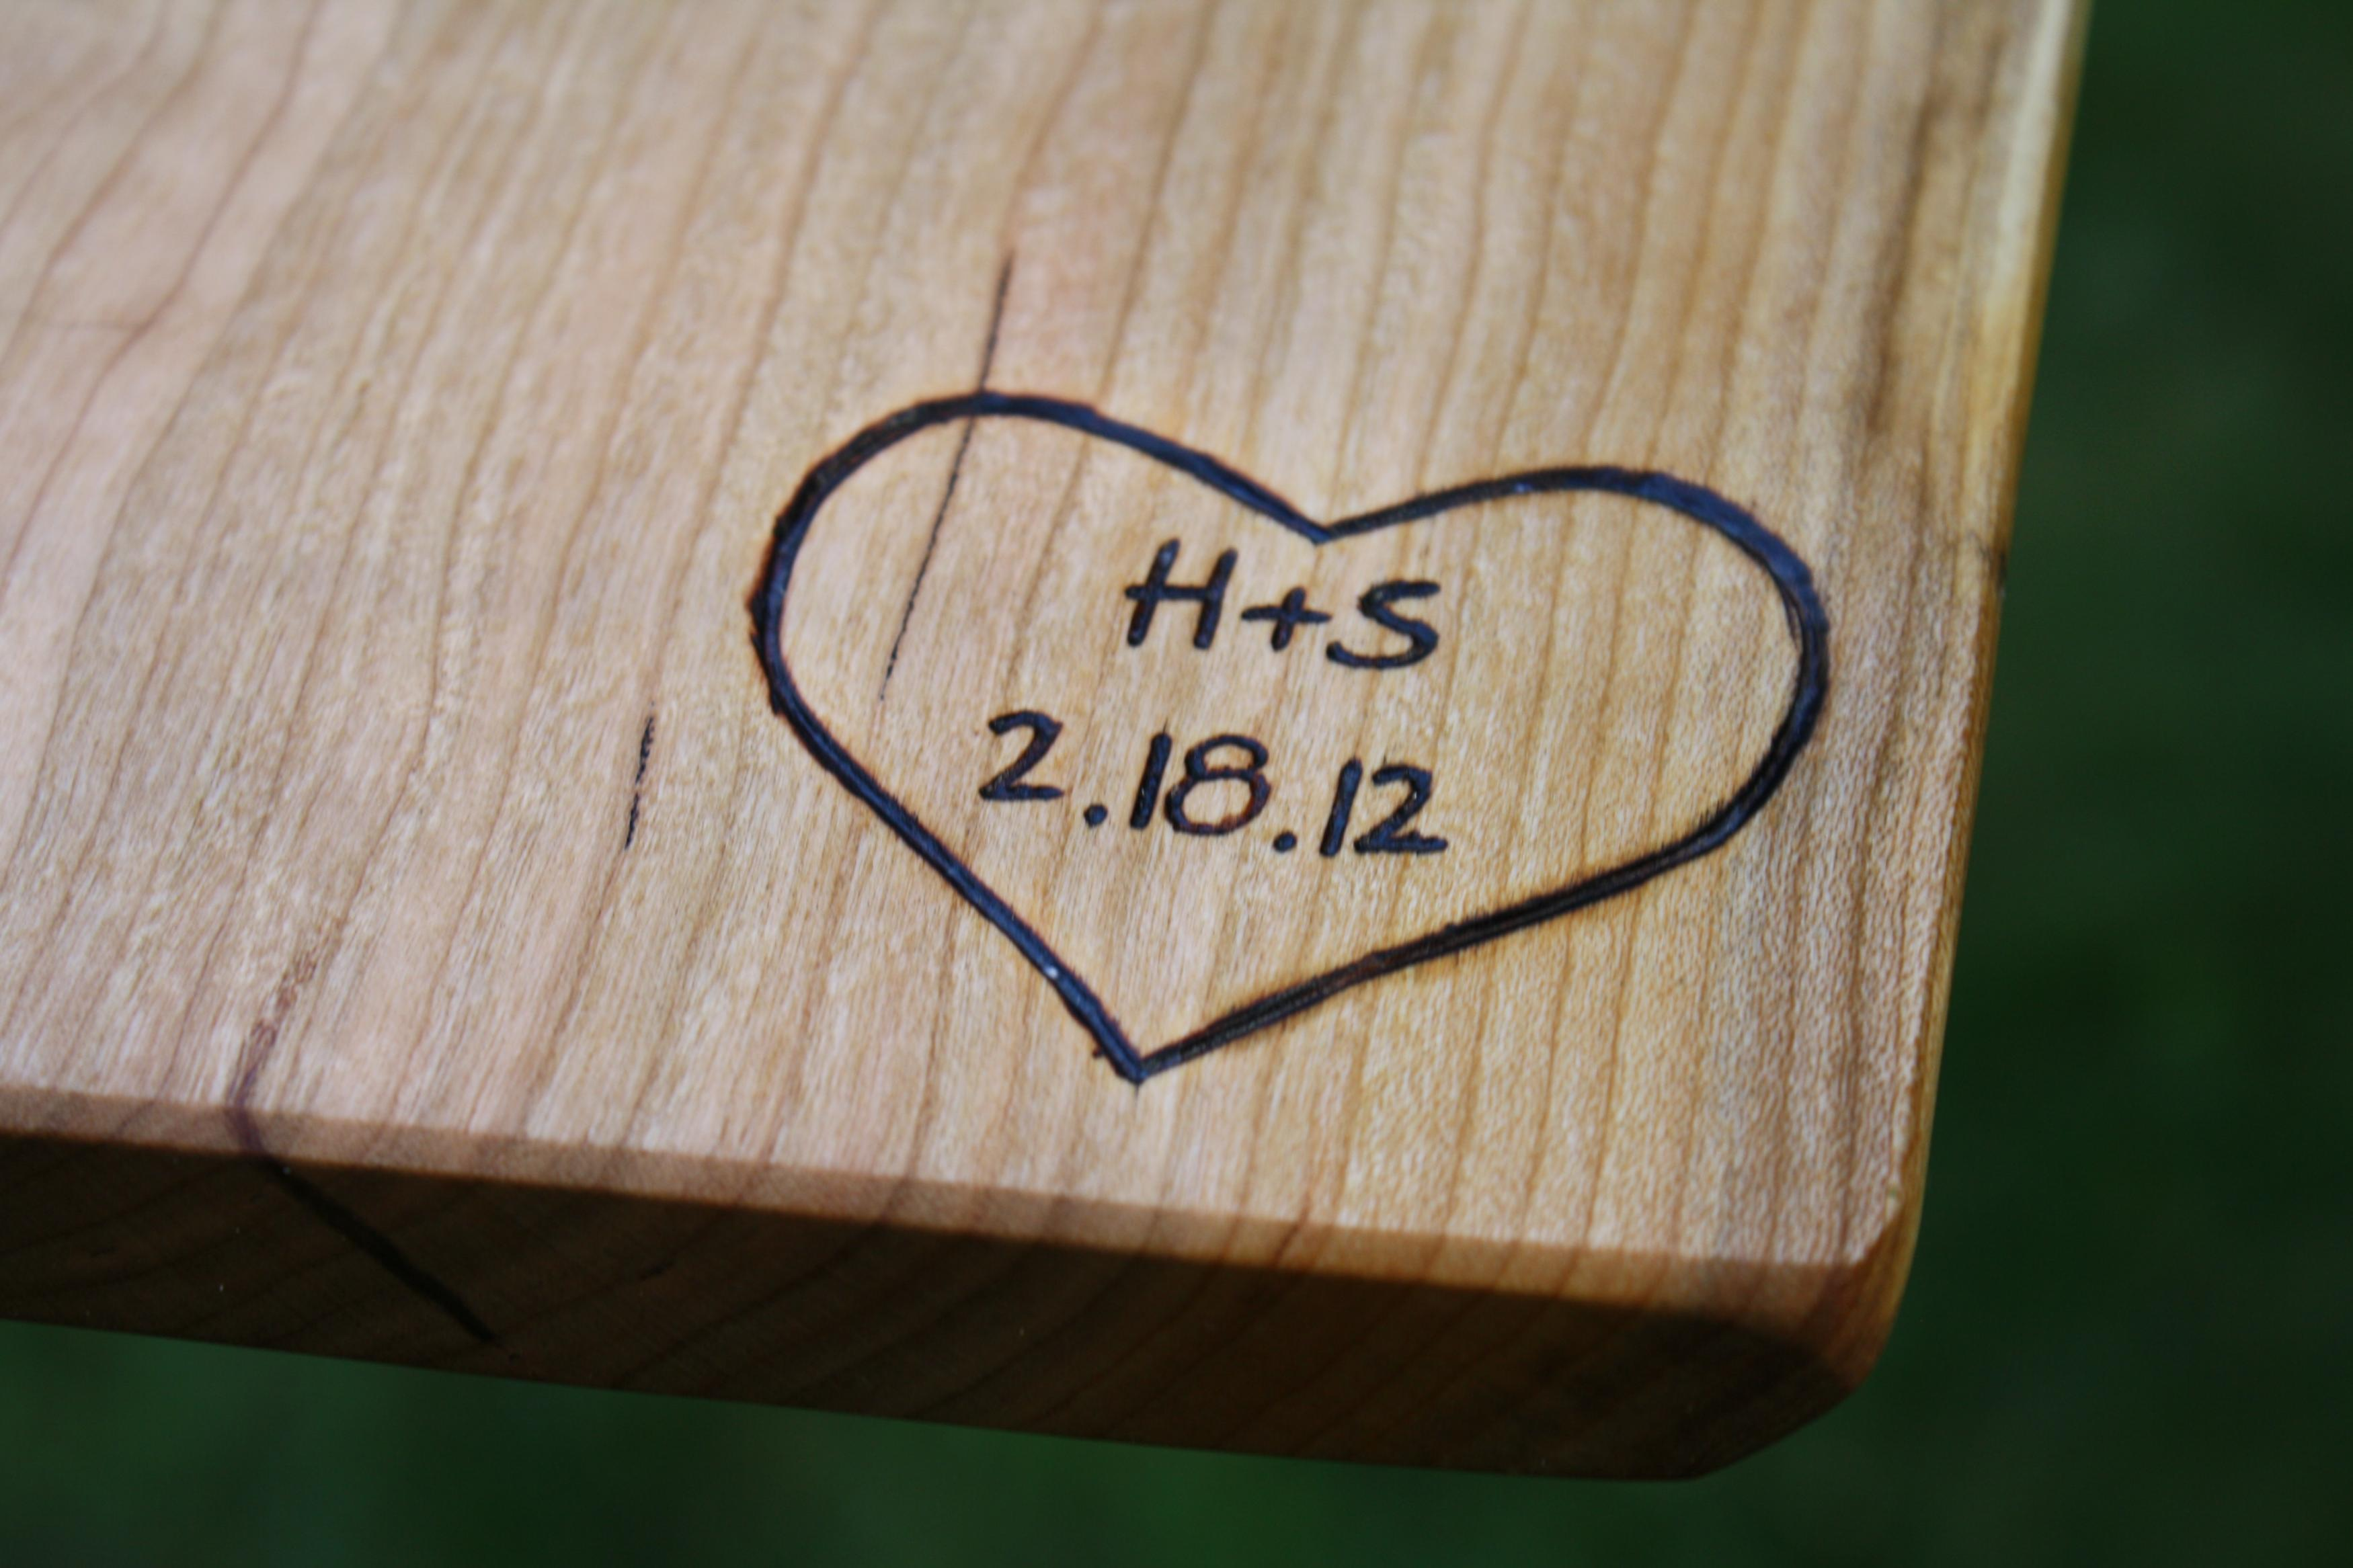 Unique Wedding Gifts Personalized : ... Unique Wedding Gifts - Wood Anniversary Gifts - Personalized Kitchen